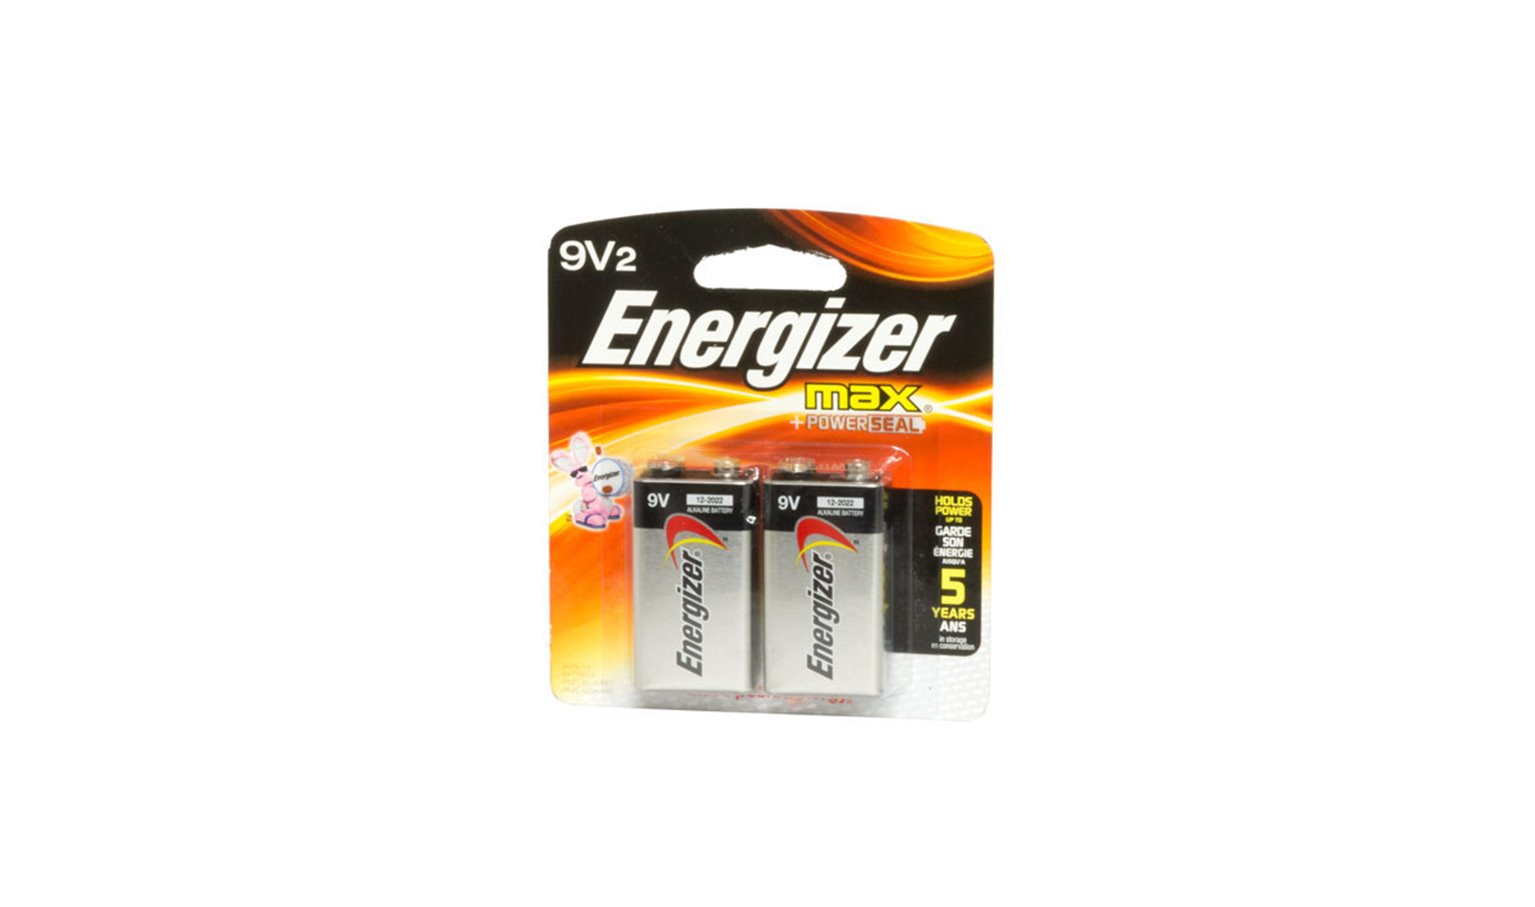 9 Volt Energizer Max Powerseal Batteries Pack of 2